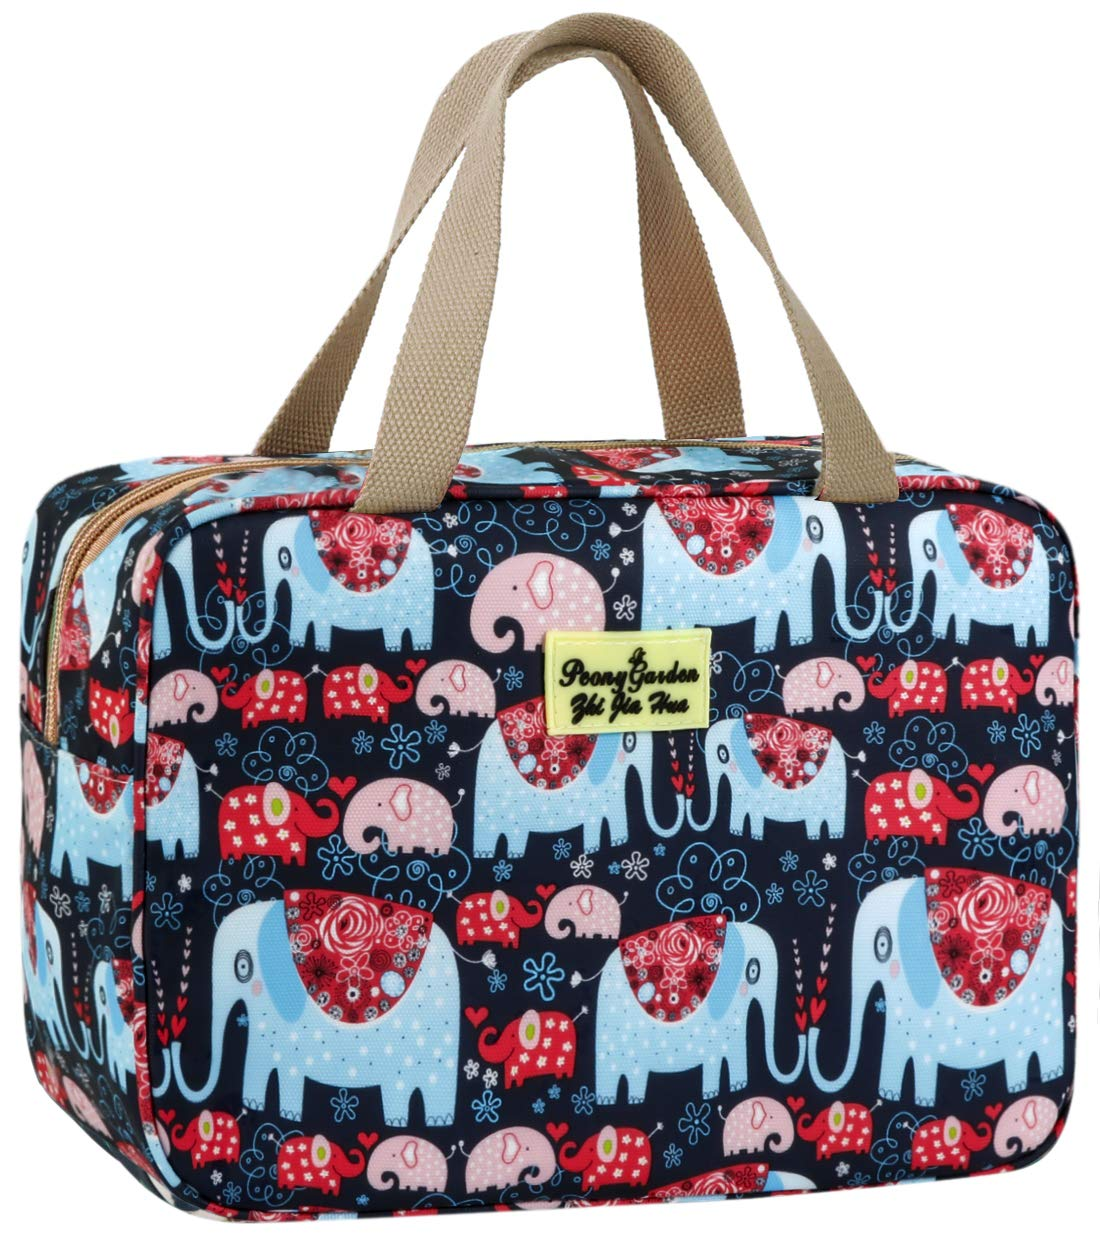 Toiletry Bag for Women Cosmetic Bag Large Toiletry Bag Navy Rose Toiletry Kit Leakproof Toiletry Bag for Girls Make Up Bag Floral Cosmetic Case (11.8L×5.1W×7.8H, Elephant)